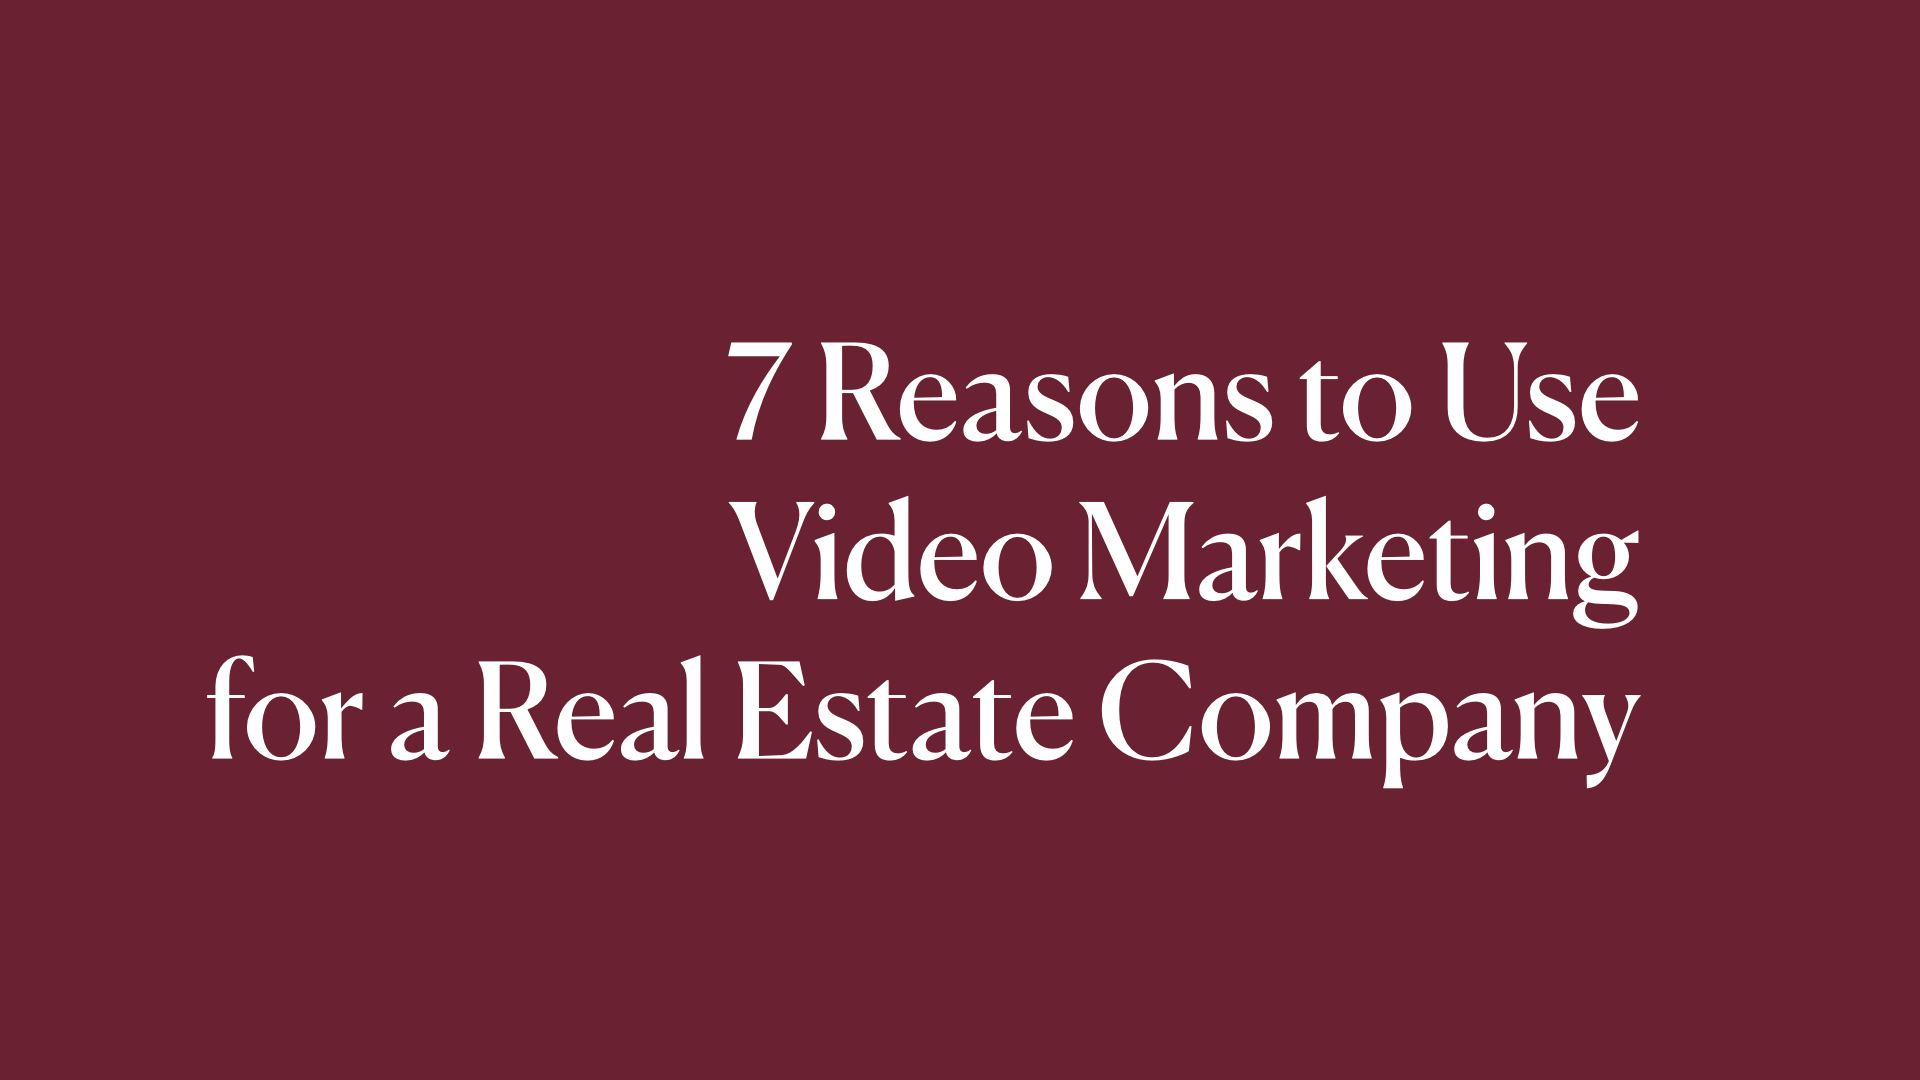 7 reasons to use video marketing for a real estate company-Studio Navans